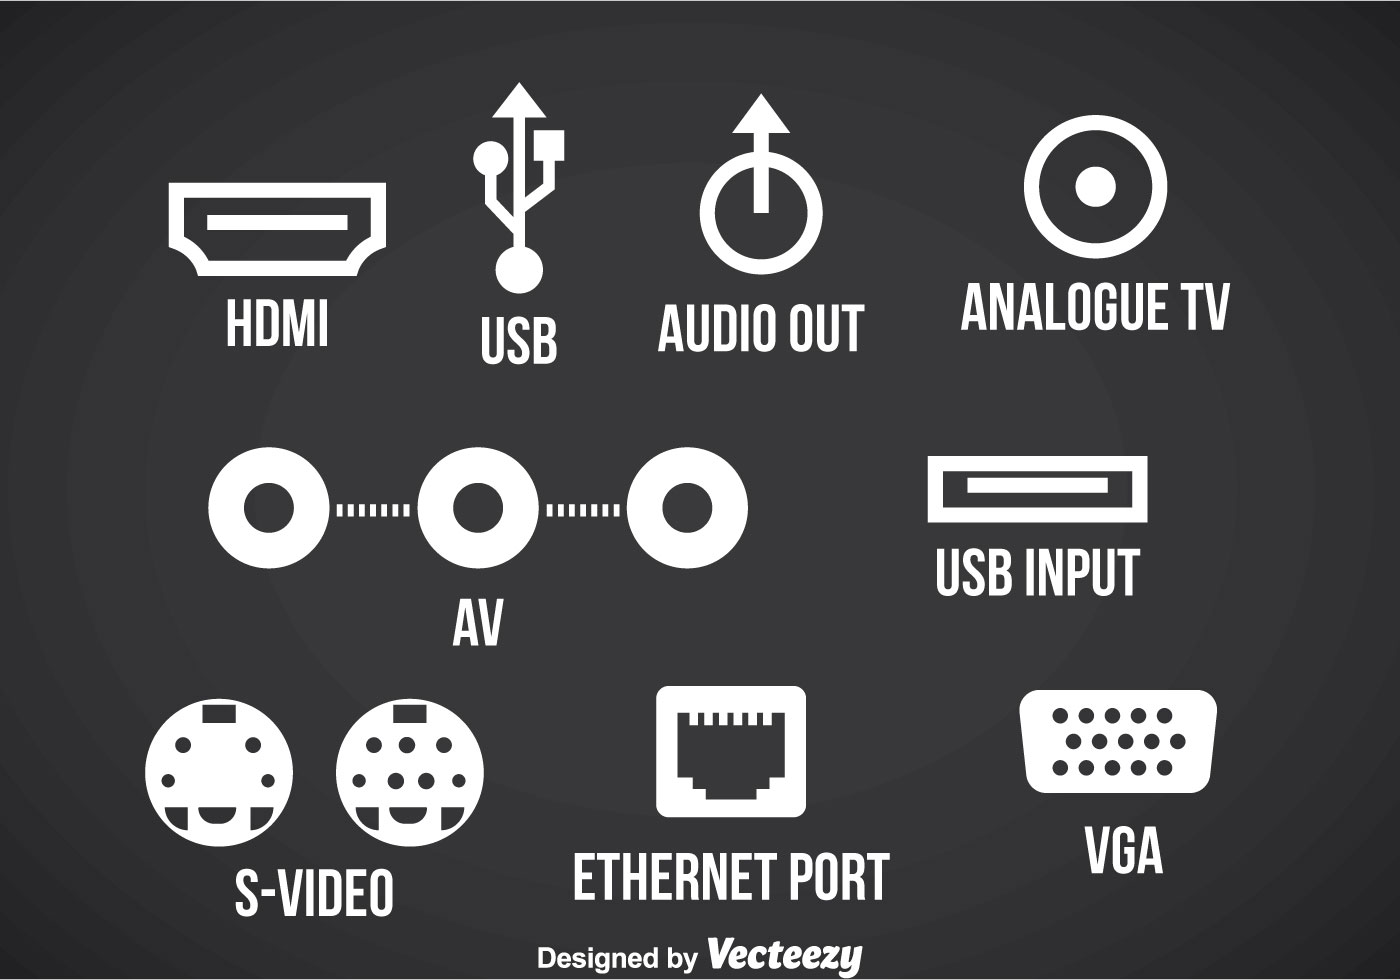 connection-port-icons-vector Usb Wire Color Code on usb cable, usb 3.0 color code, powered usb, usb power code, windows to go, usb to audio wiring, usb video device class, usb power wires, usb 3.0 front panel connector, usb on-the-go, usb flash drive, 4.7k resistor color code, usb b wiring, usb port wiring, usb implementers forum, usb 3.0 to firewire, usb cord colors, usb mass-storage device class, usb diagram, usb human interface device class, usb output, usb wiring code, usb hub, usb charger color code, data cable color code, usb 3 wires, usb pinout color, usb port color code, wireless usb, memory card reader, host controller interface, card reader, 3.3k resistor color code,